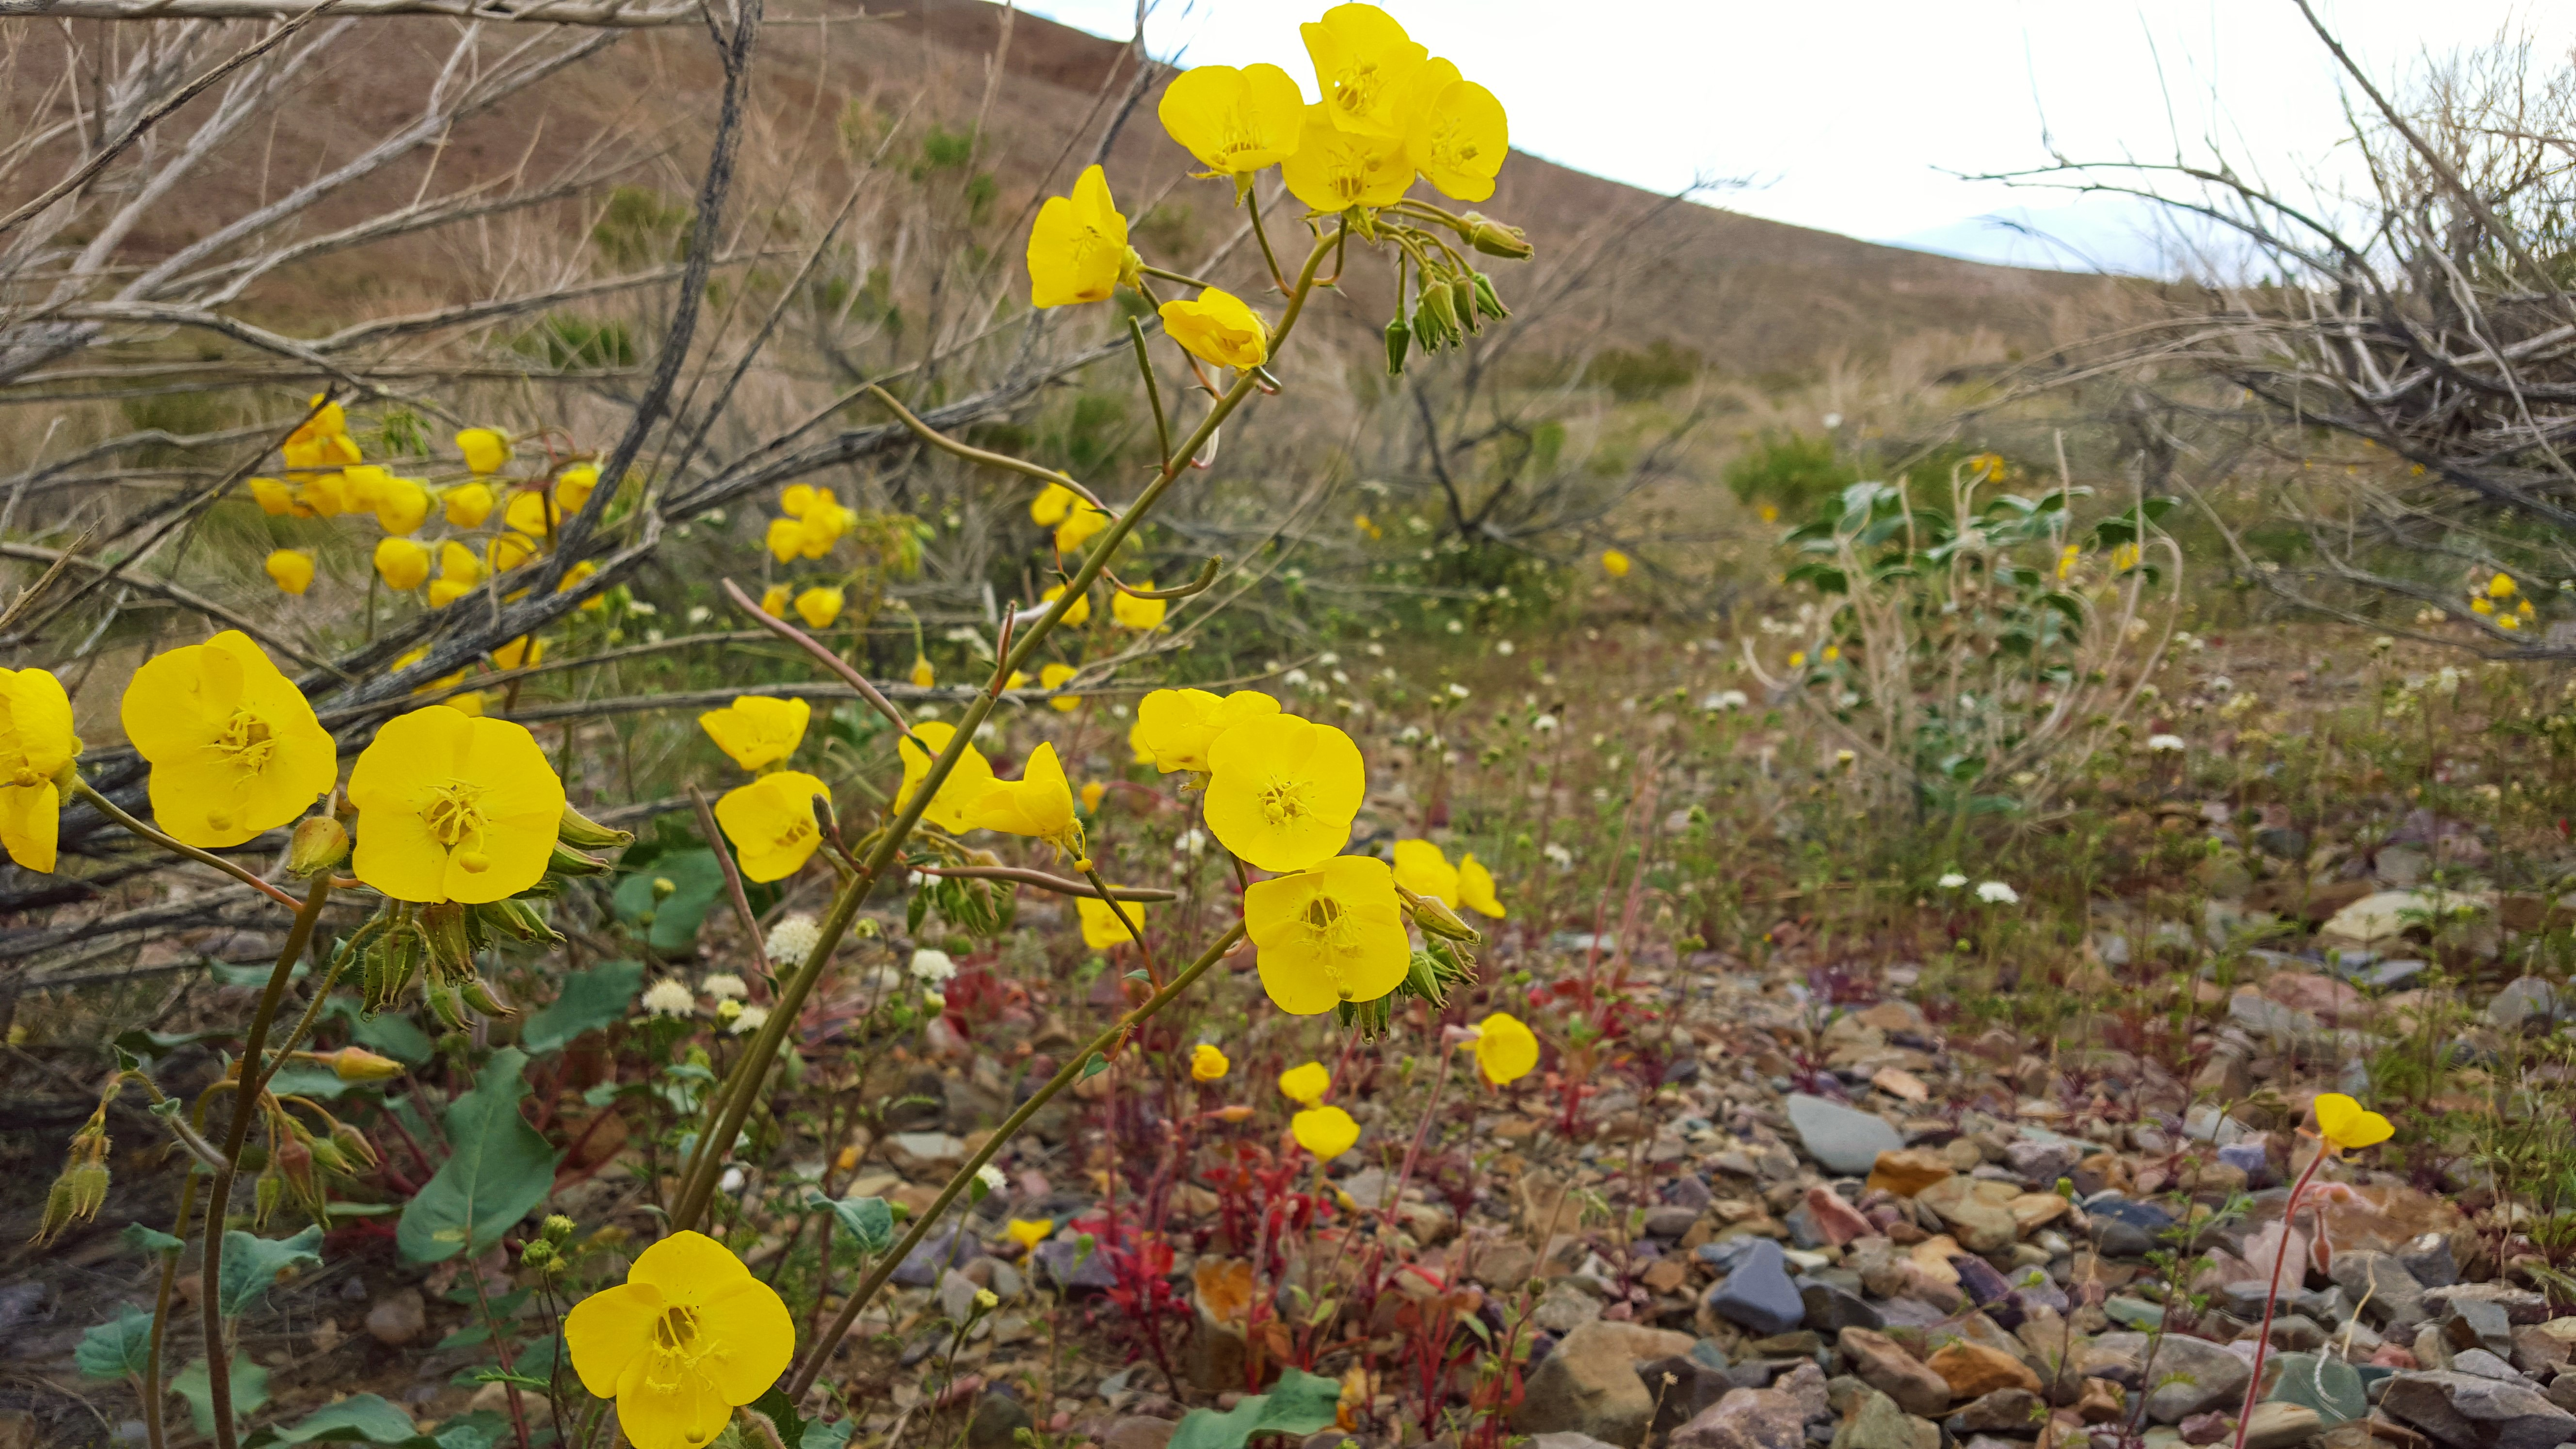 Golden Evening Primrose (Camissonia brevipes)